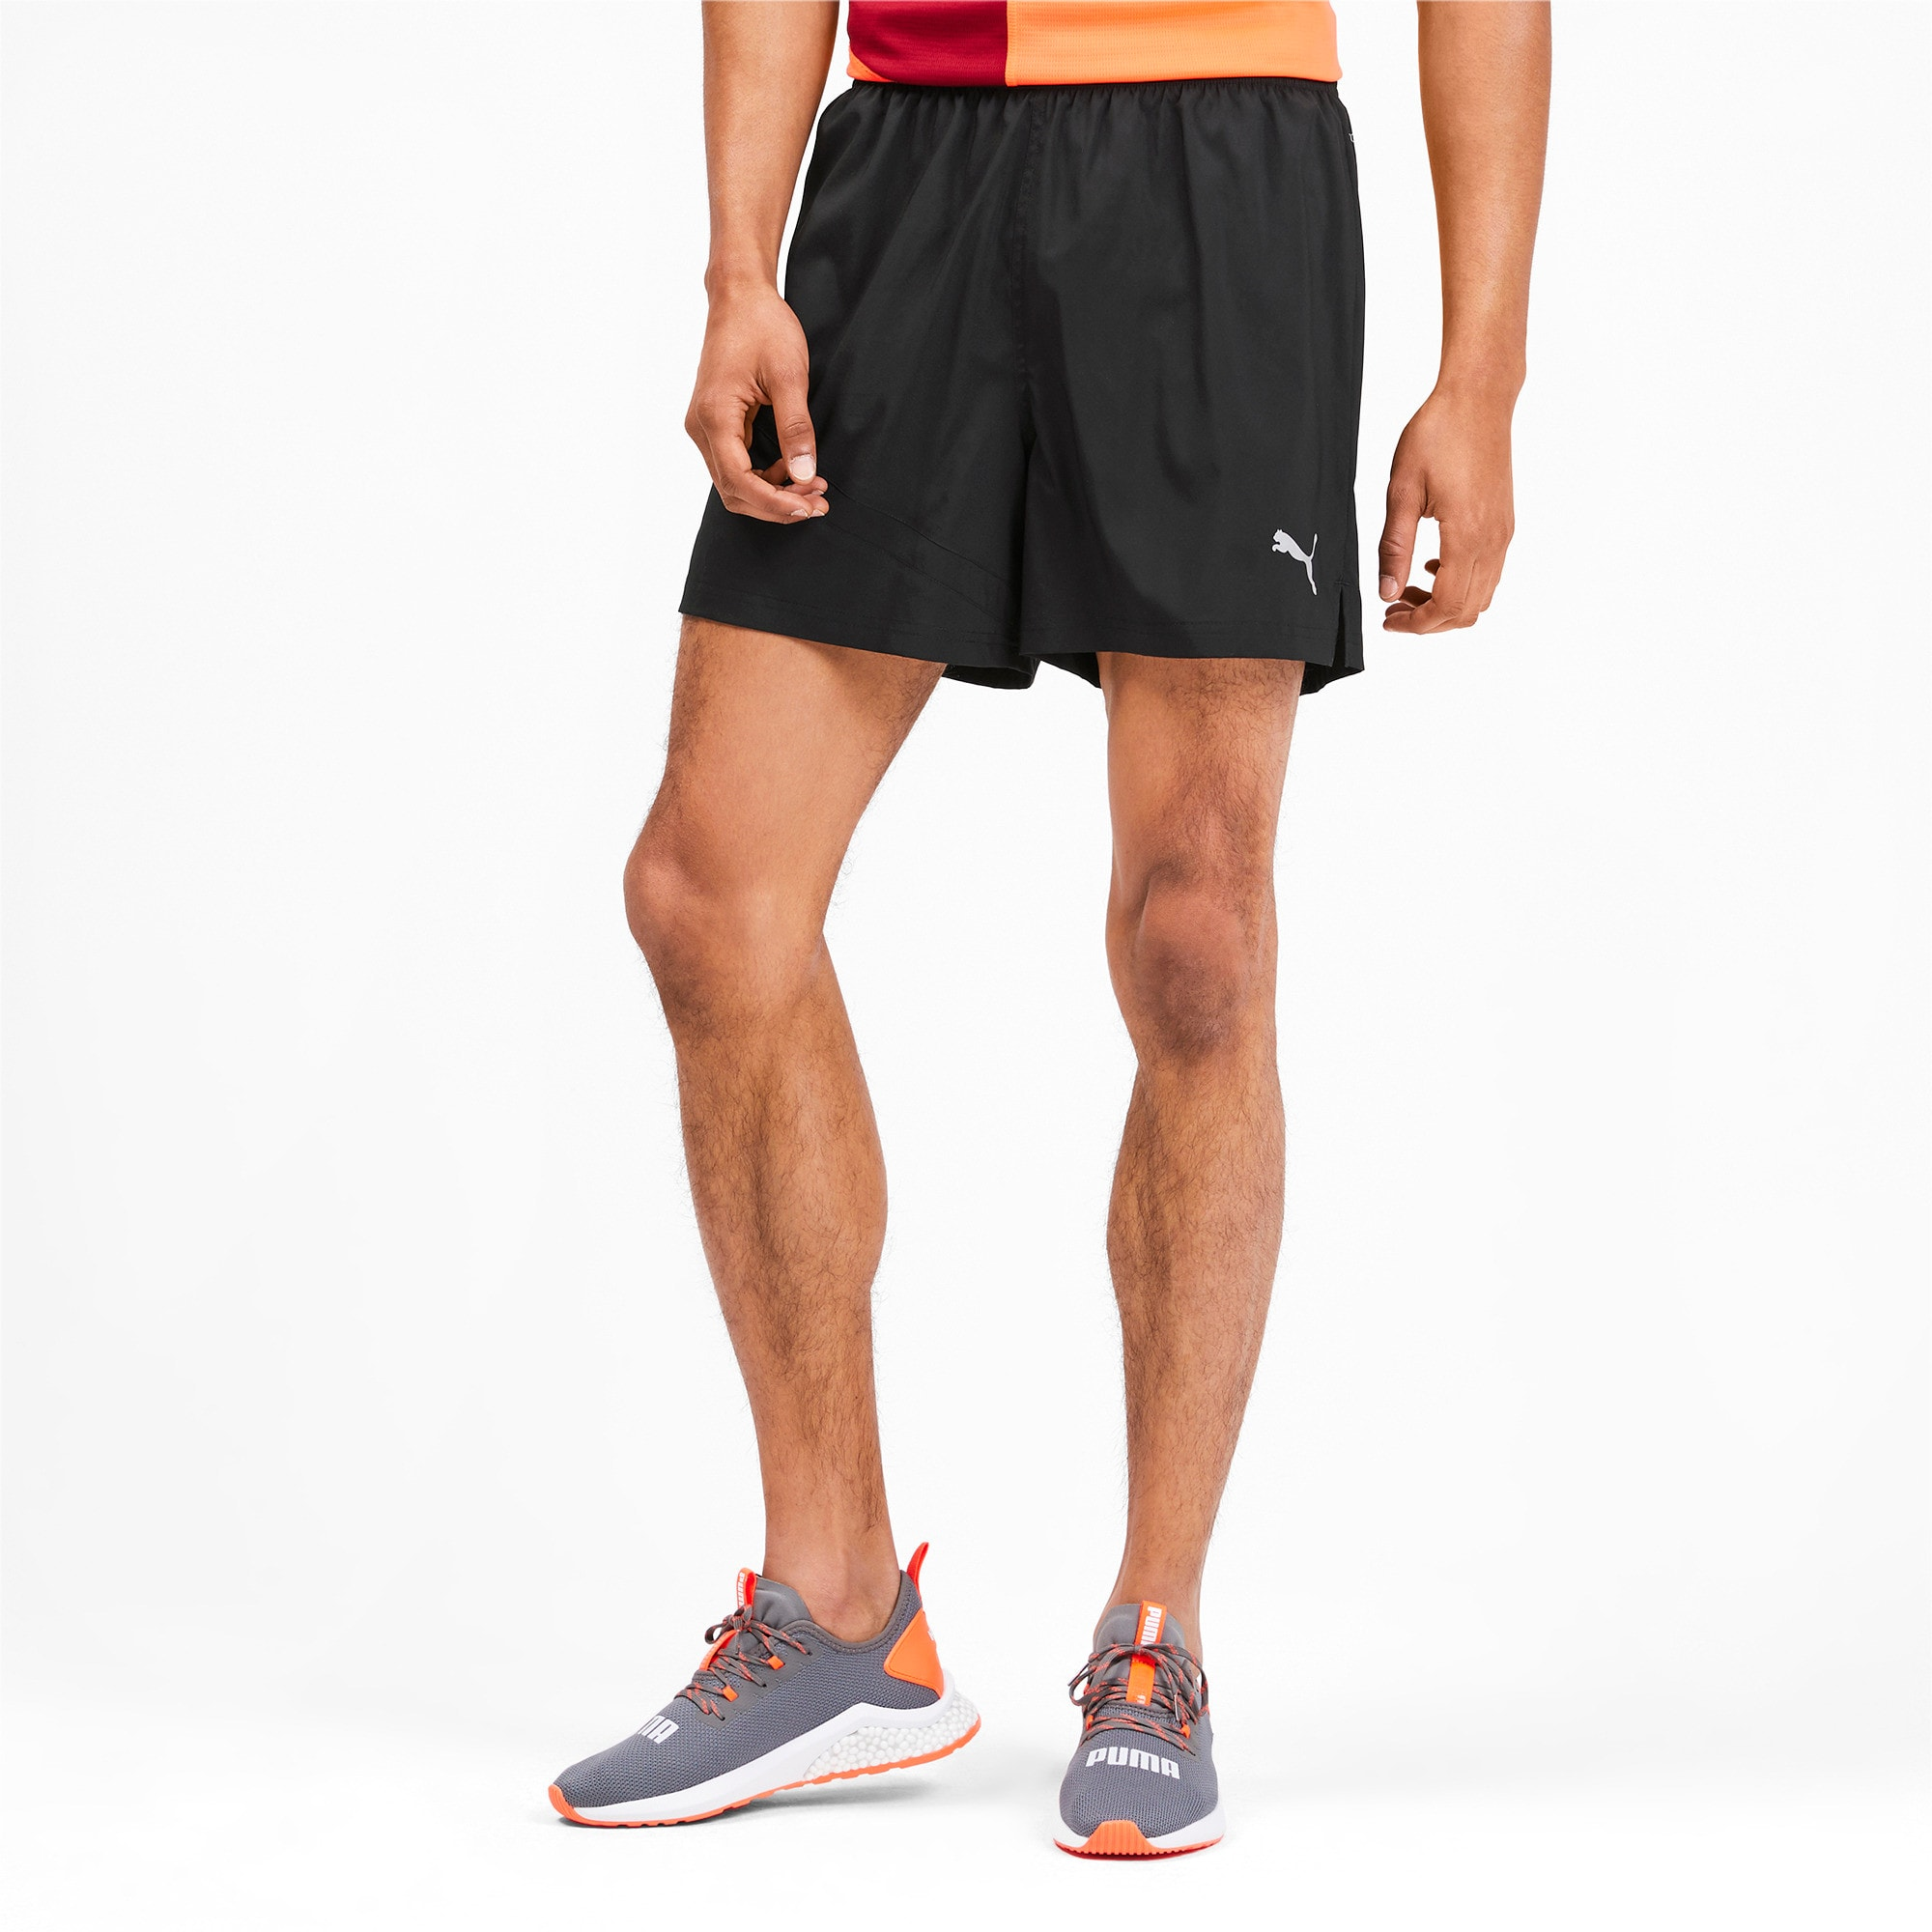 Thumbnail 1 of Ignite Men's Shorts, Puma Black, medium